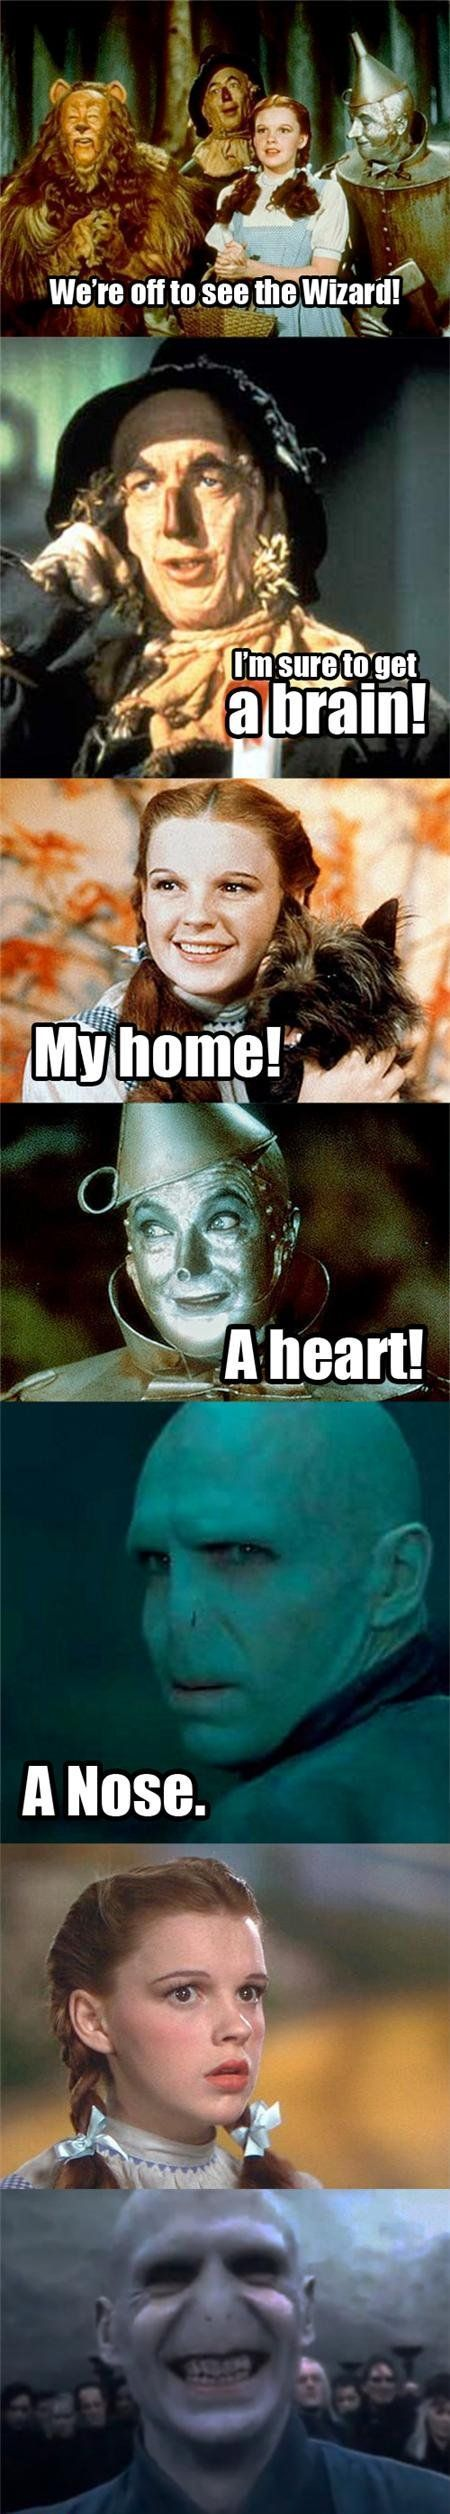 We're off to see the Wizard!: Voldemort, Harry Potter Jokes, Laugh, Harry Potter Memes, Harrypotter, Things, Wizards Of Oz, So Funny, Nose